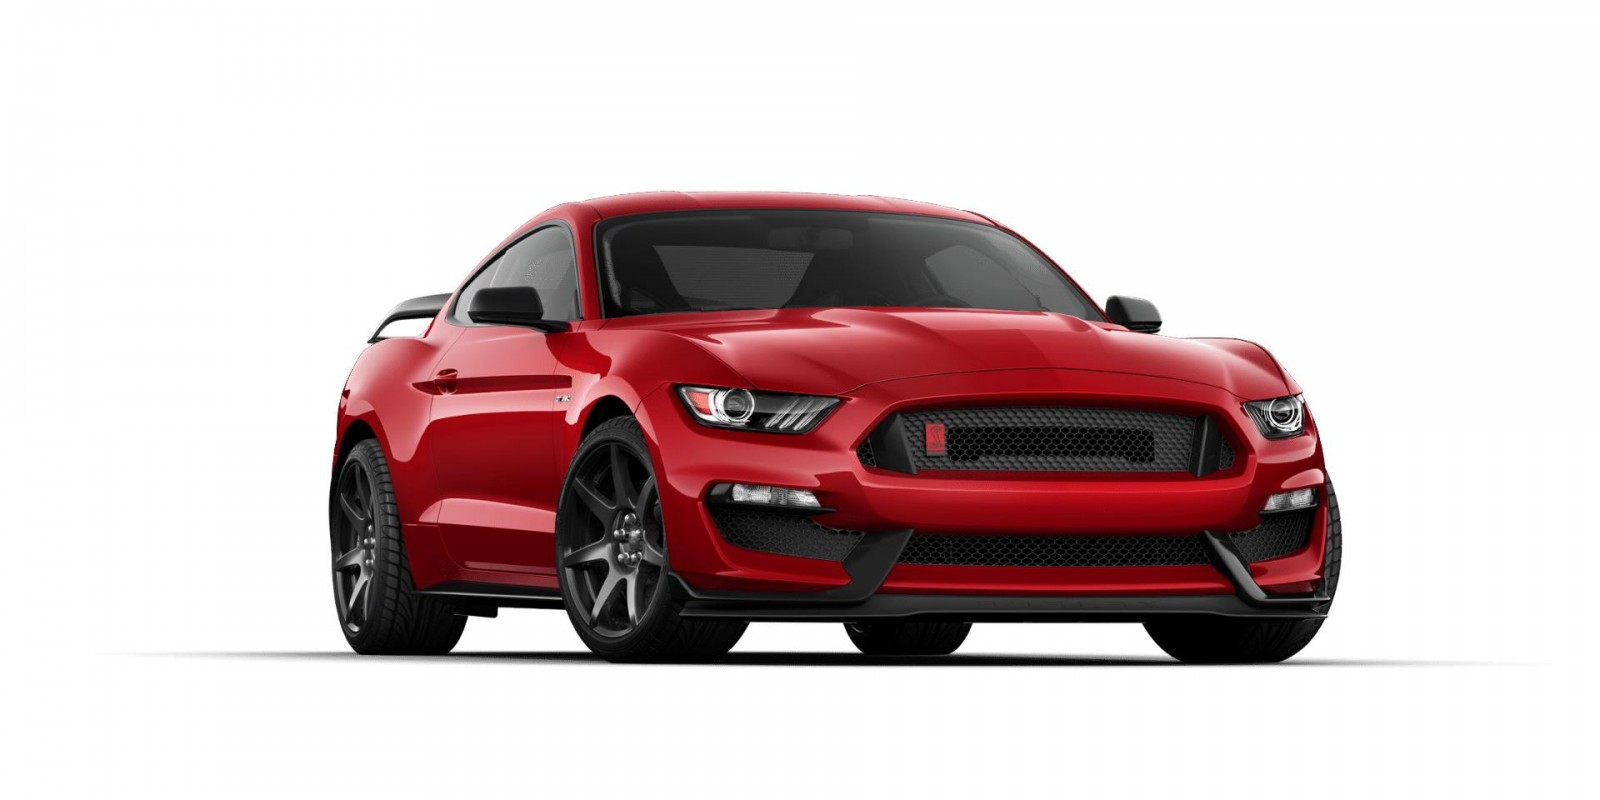 2015 Mustang Gt Color Options >> 2016 SHELBY Ford Mustang GT350R Colors